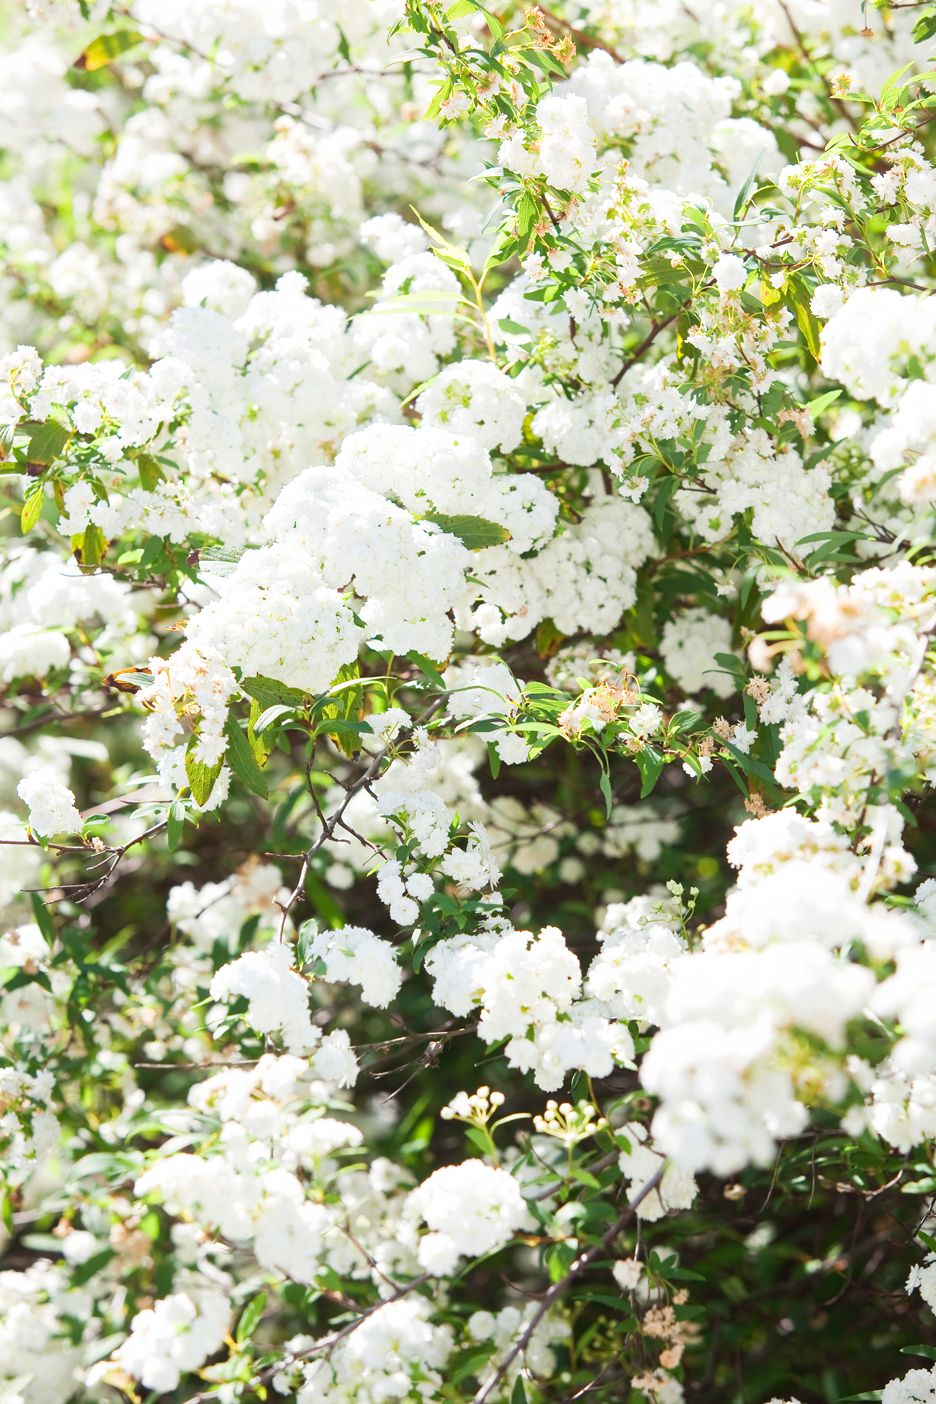 May Bush May bush is one of the most spectacular white